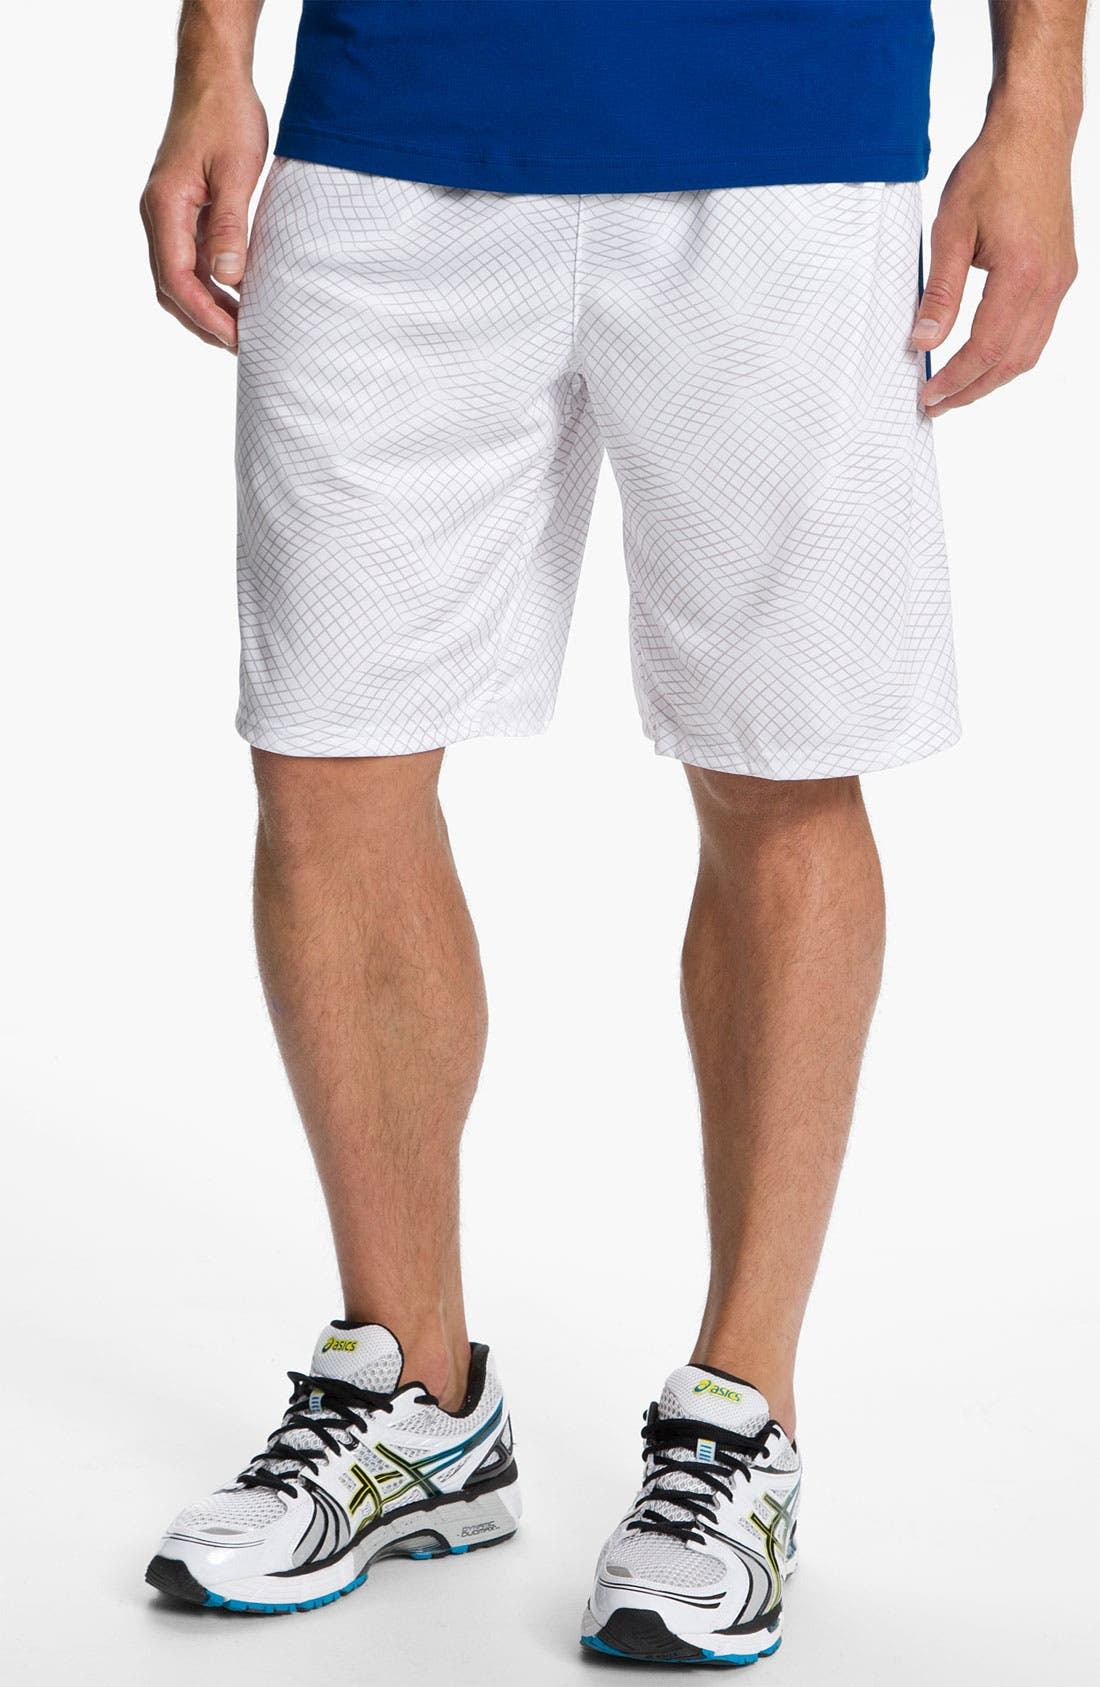 Main Image - Under Armour 'Multiplier' Shorts (Online Only)